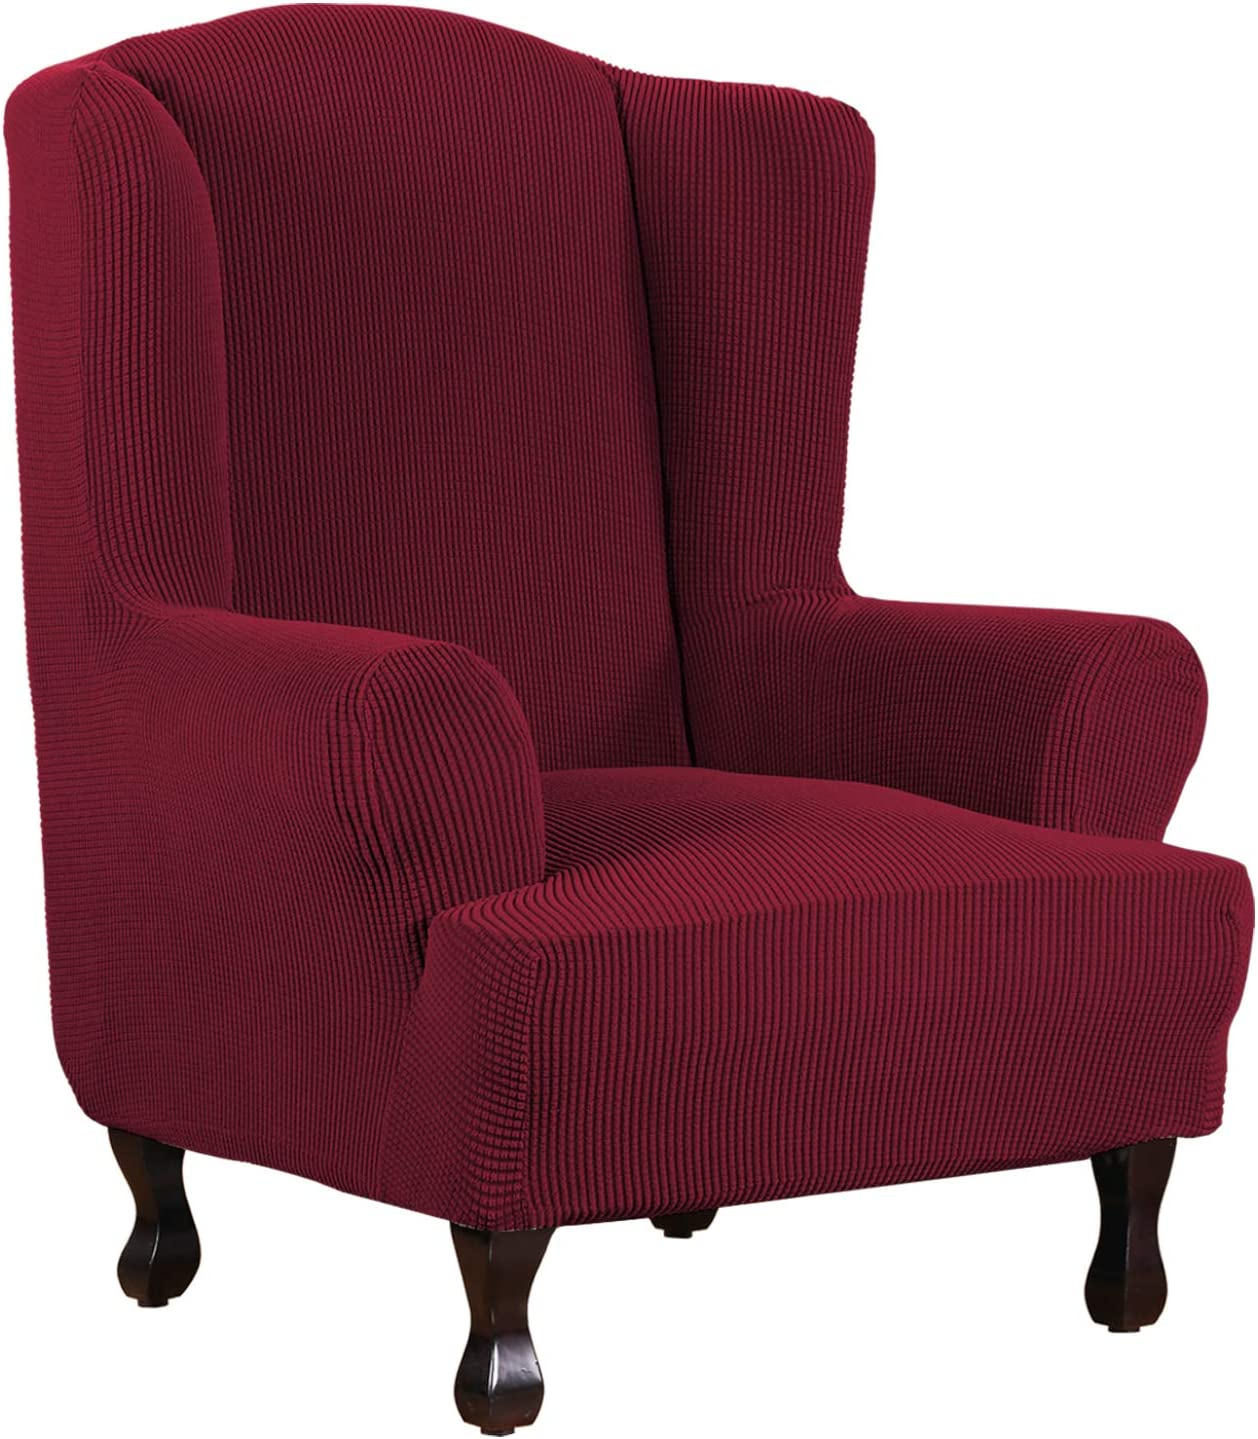 1 Piece Super Stretch Stylish Furniture Cover/Wingback Chair Cover Slipcover Spandex Jacquard Checked Pattern, Super Soft Slipcover Machine Washable/Skid Resistance (Wing Chair, Burgundy Red)